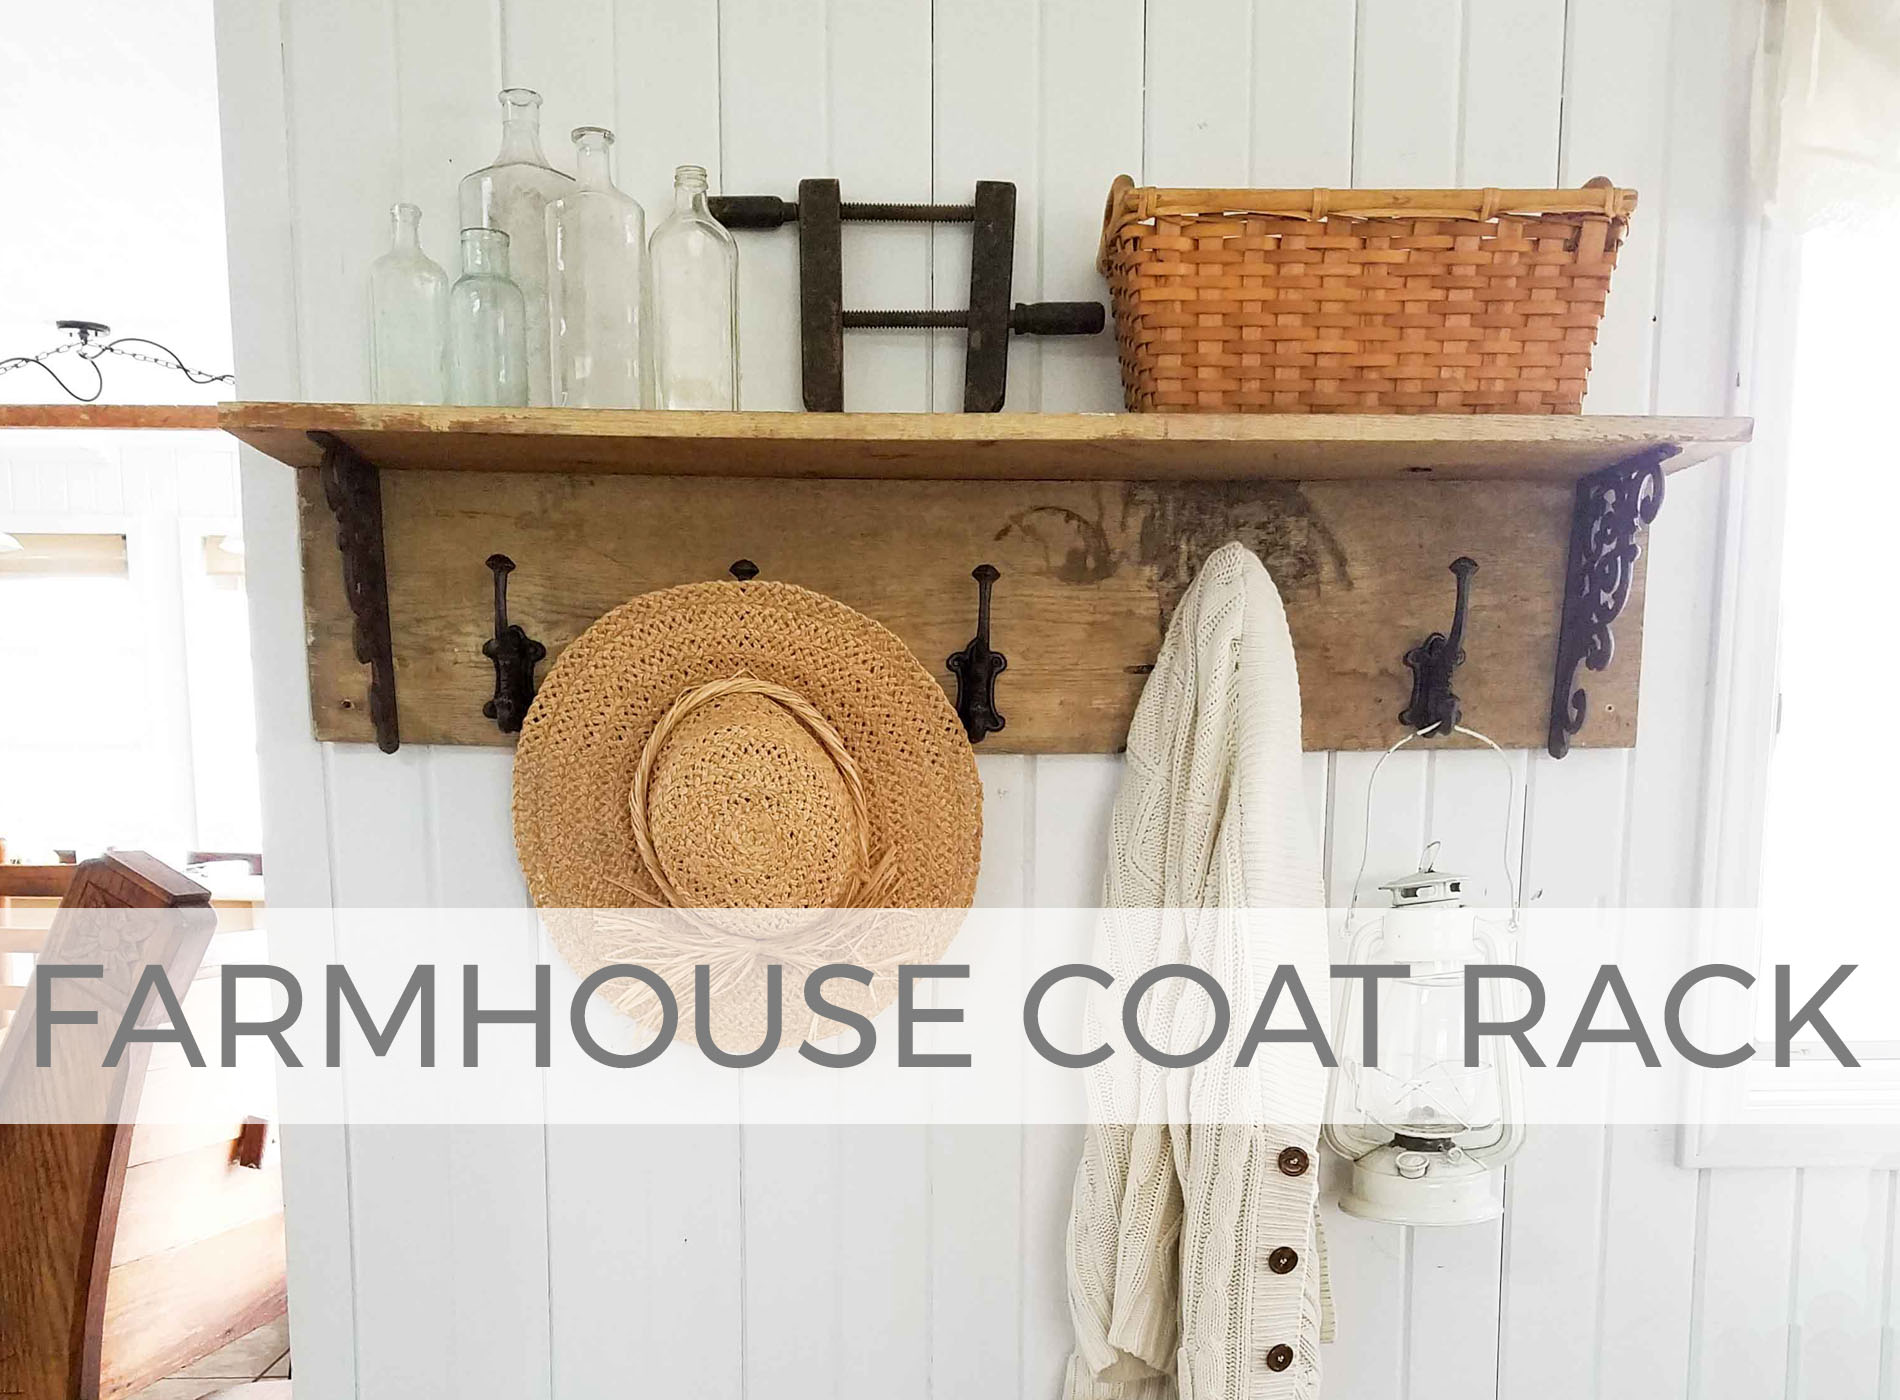 Build a farmhouse coat rack with this tutorial by Larissa of Prodigal Pieces | prodigalpieces.com #prodigalpieces